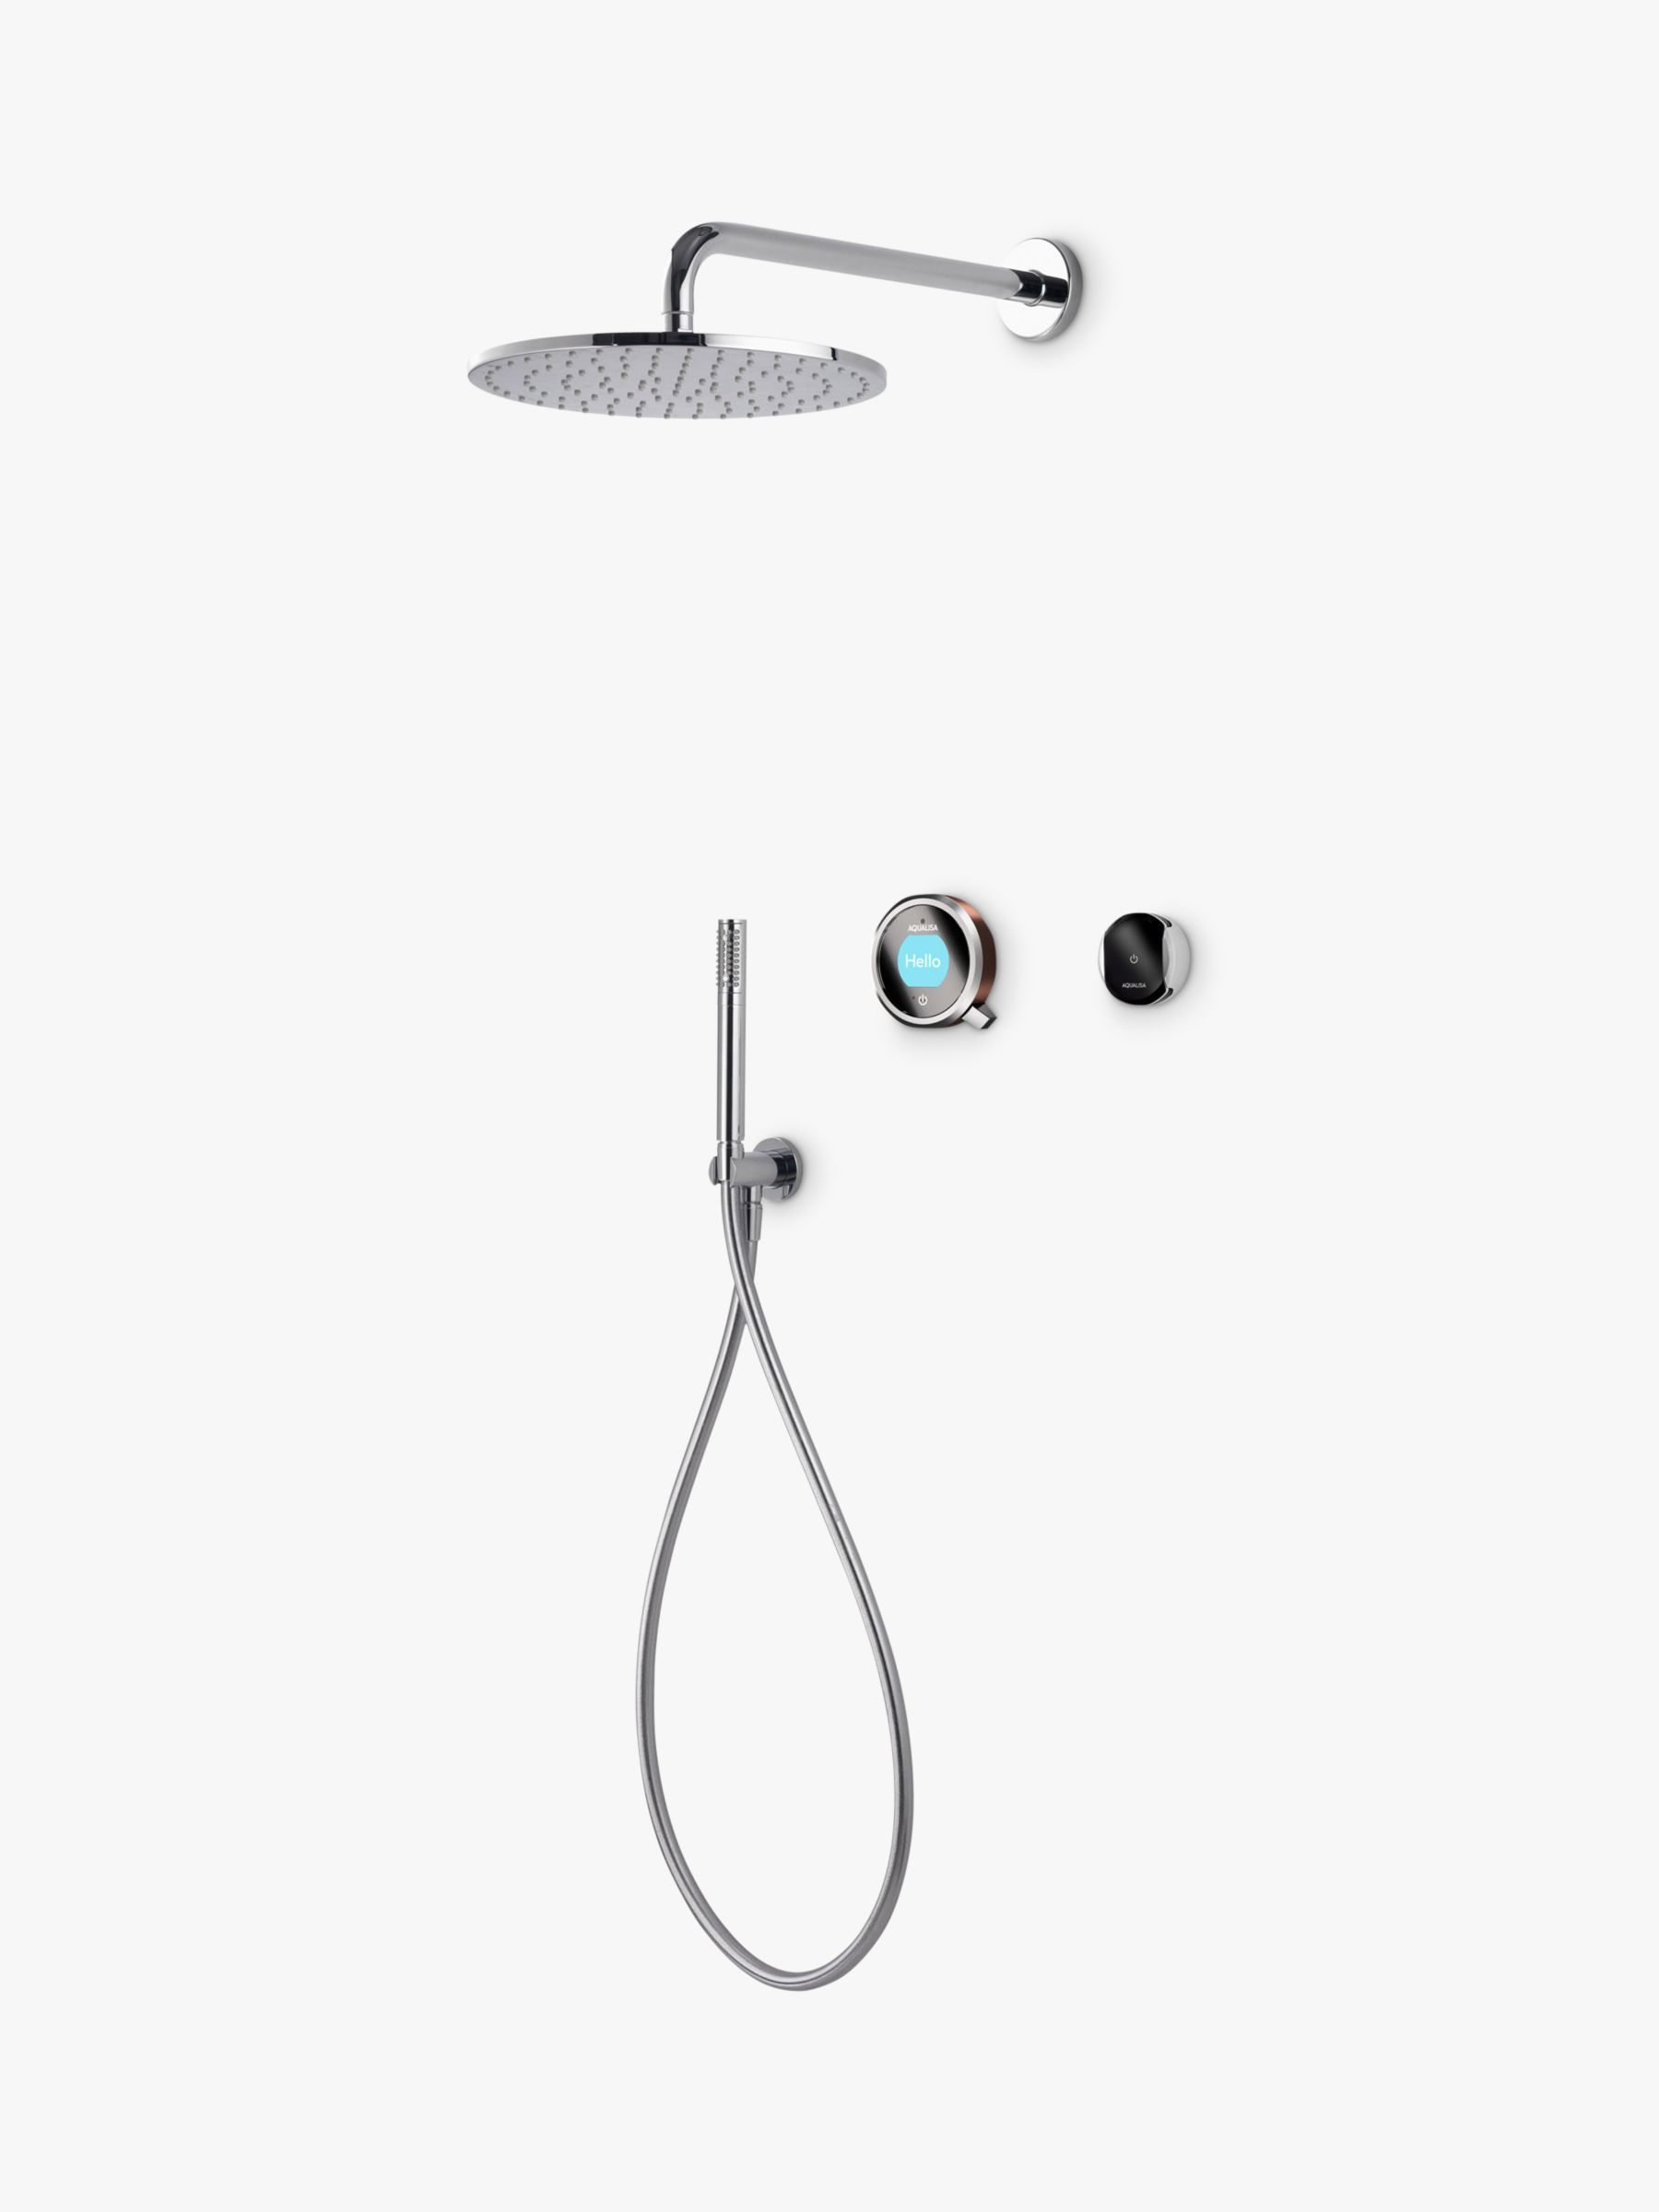 Aqualisa Aqualisa Q EDITION QES5 Smart Mixer with Shower Handset and Drencher, Silver